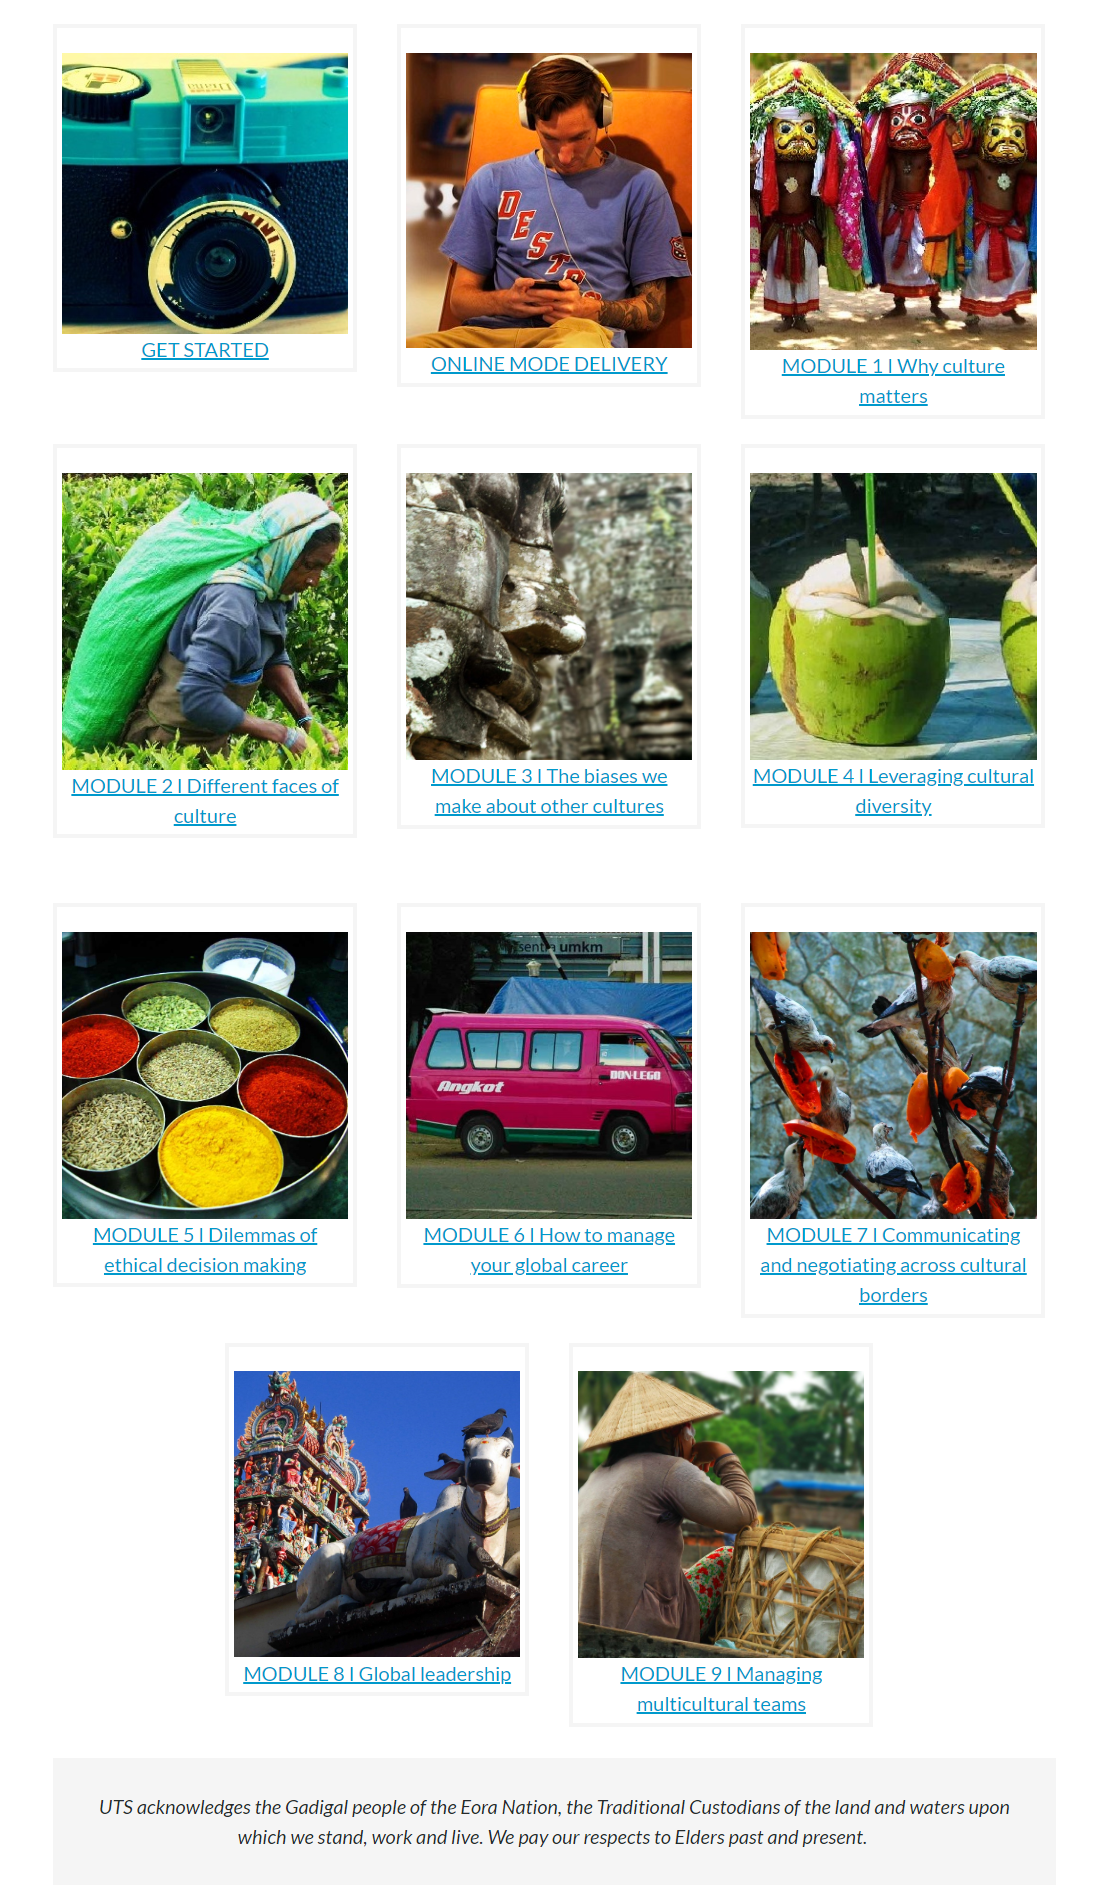 A homepage using image tiles that link out to each module. The images help encapsulate the topic each module covers.